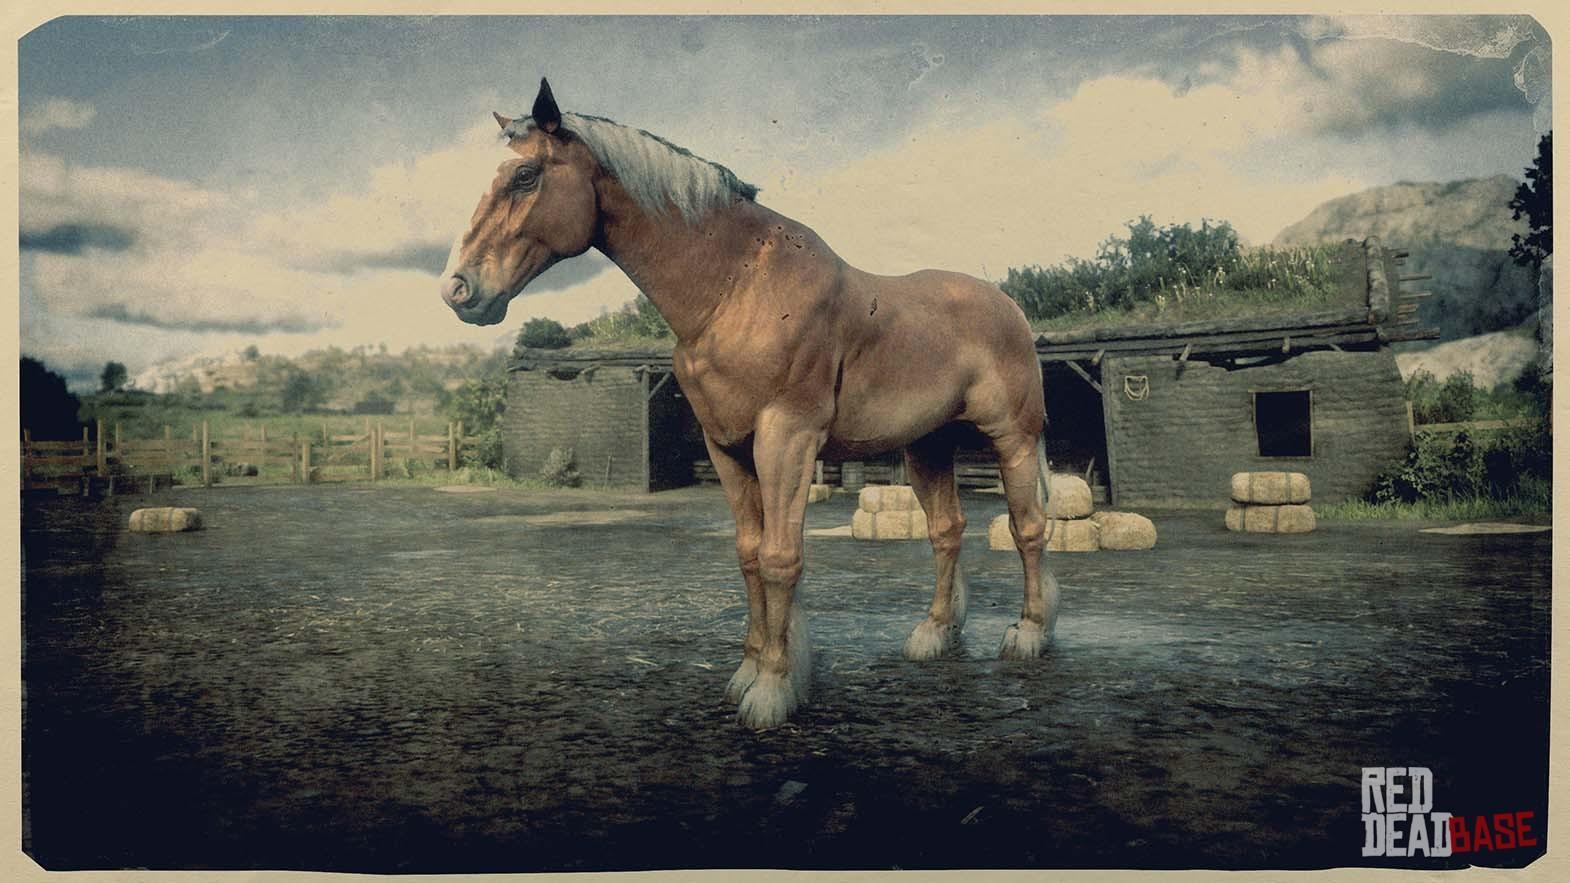 Belgian Draft Horse Red Dead Redemption 2 Horse Breeds Guide Red Dead Redemption 2 Animals Species Wildlife Database Red Dead Redemption 2